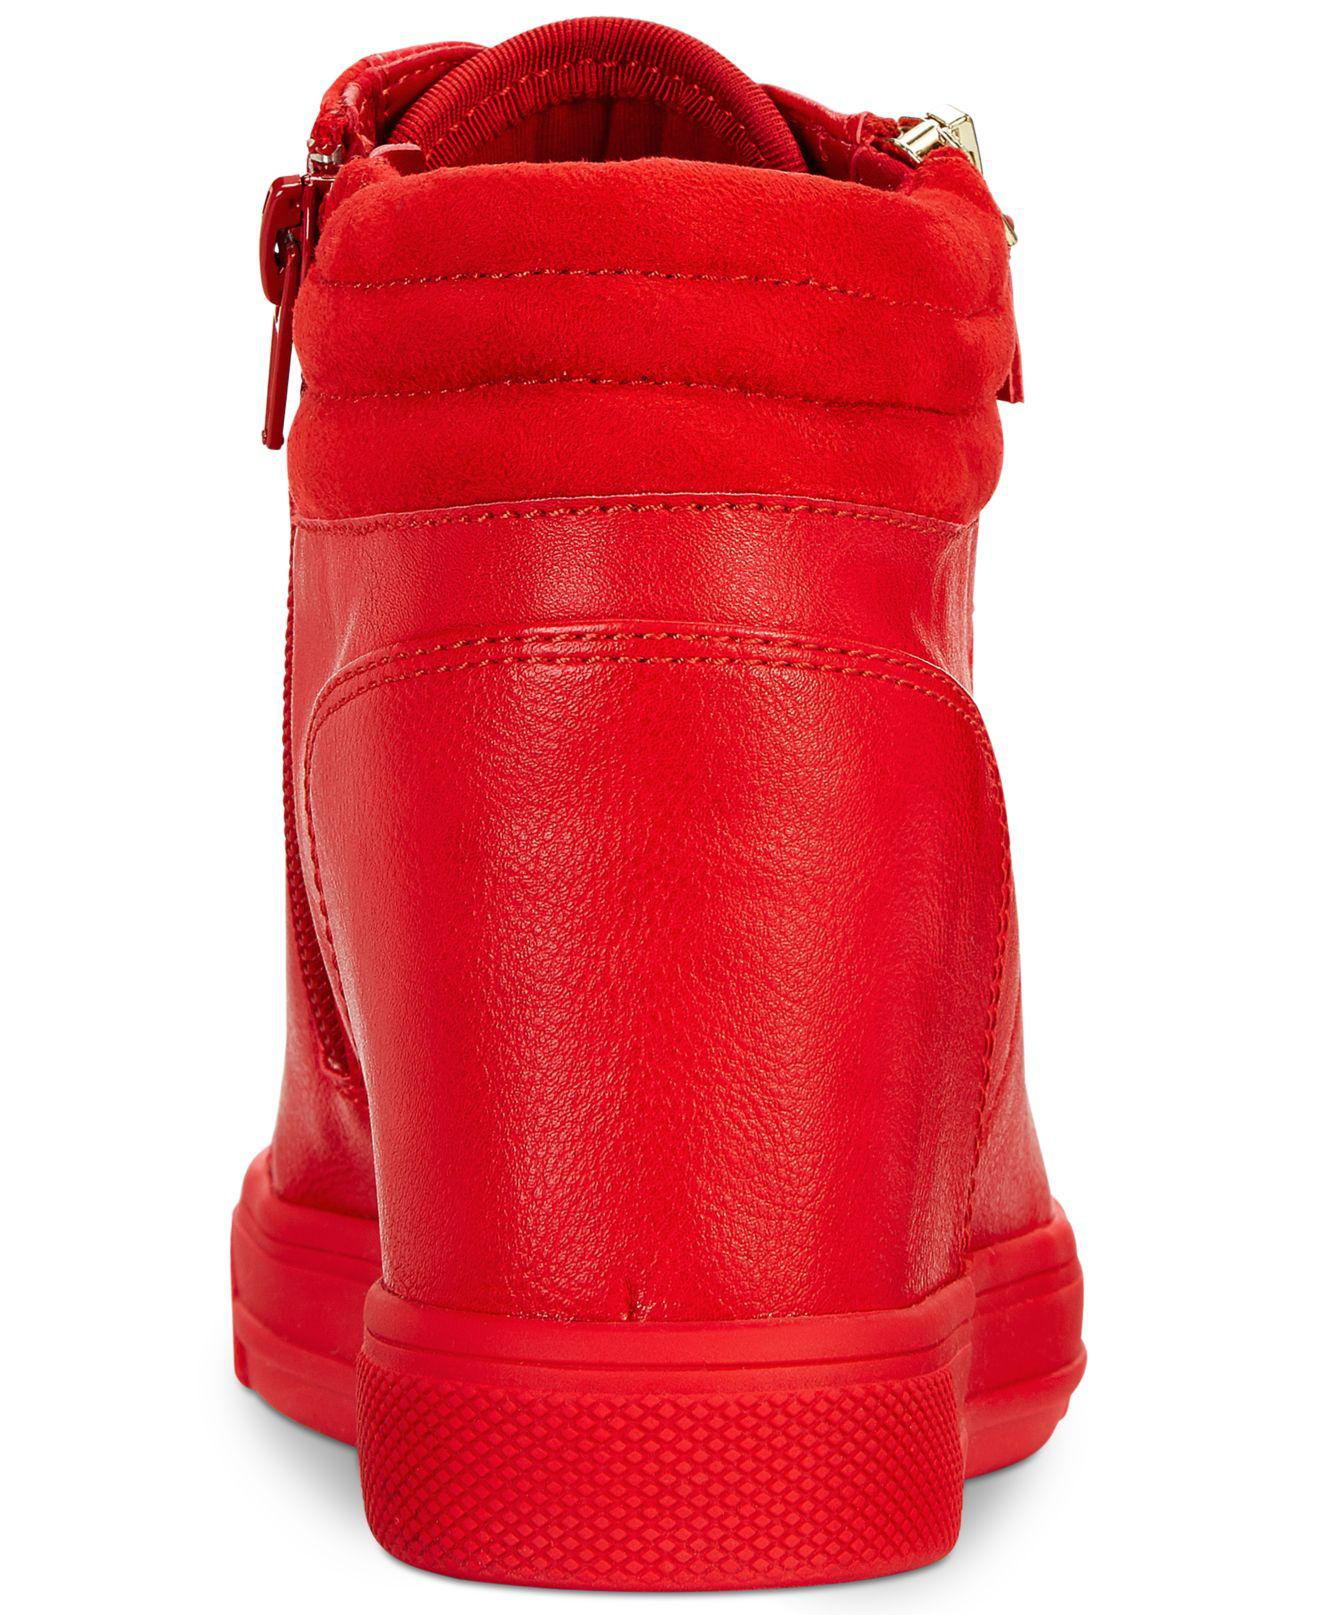 90bbc5395ebe Lyst - ALDO Kaia Lace-up Wedge Sneakers in Red